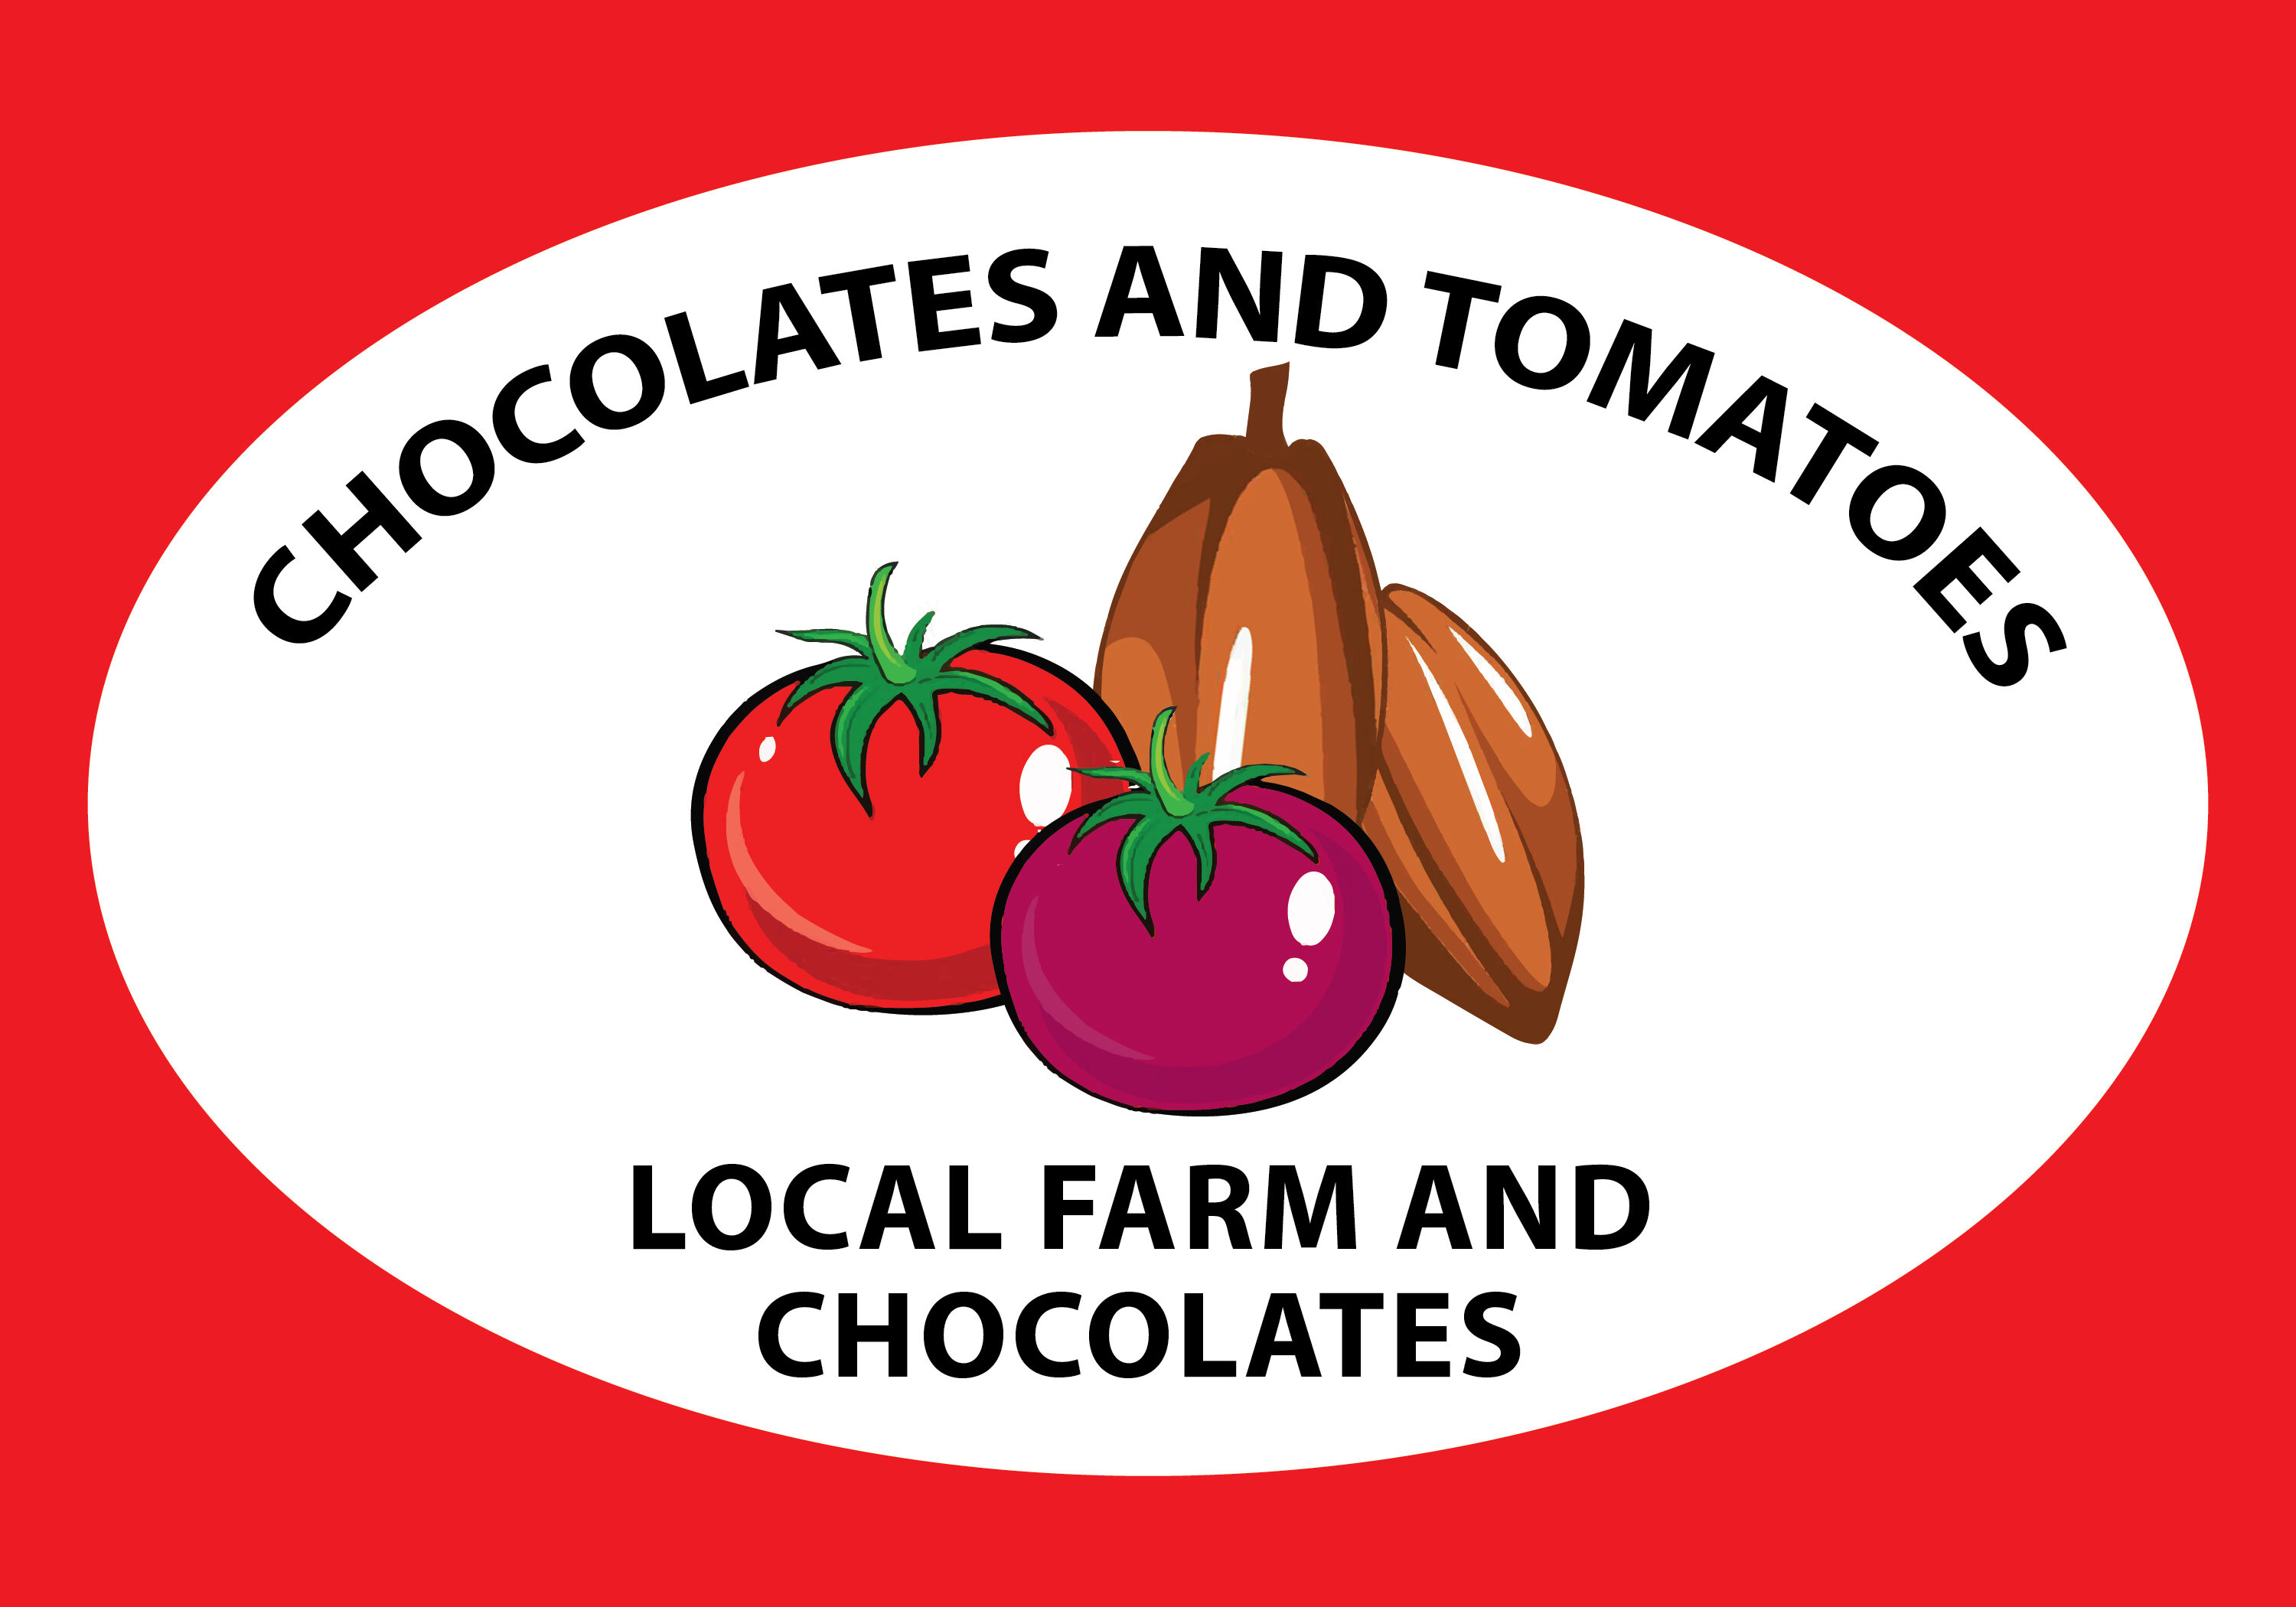 Chocolate and Tomatoes Farm